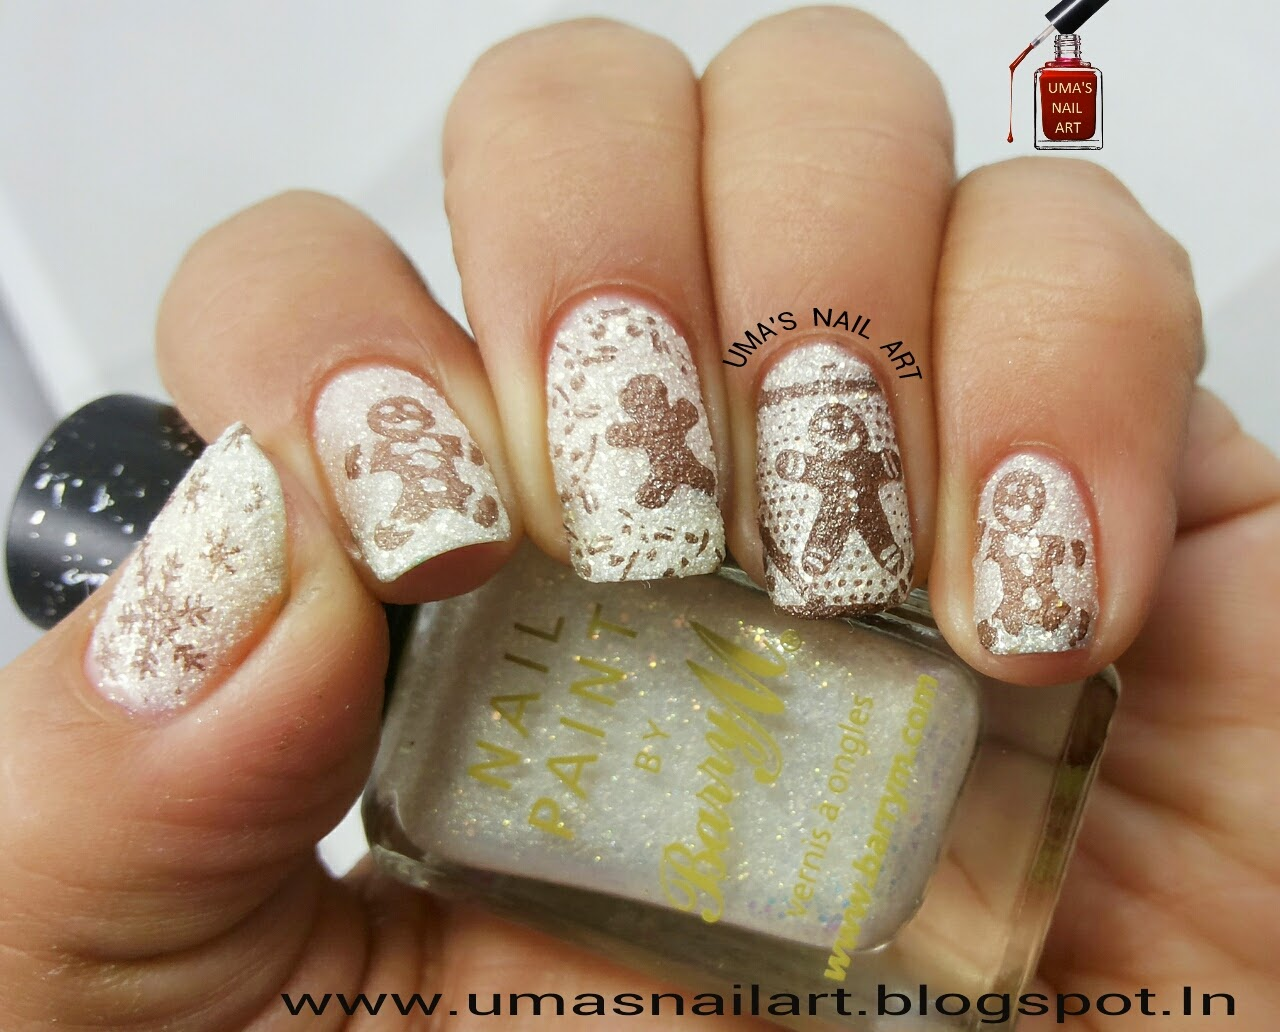 Umas nail art gingerbread nails these biscuits are decorated and then given as a sweet present to relatives or family members so i also present you my delicious gingerbread nail art prinsesfo Choice Image